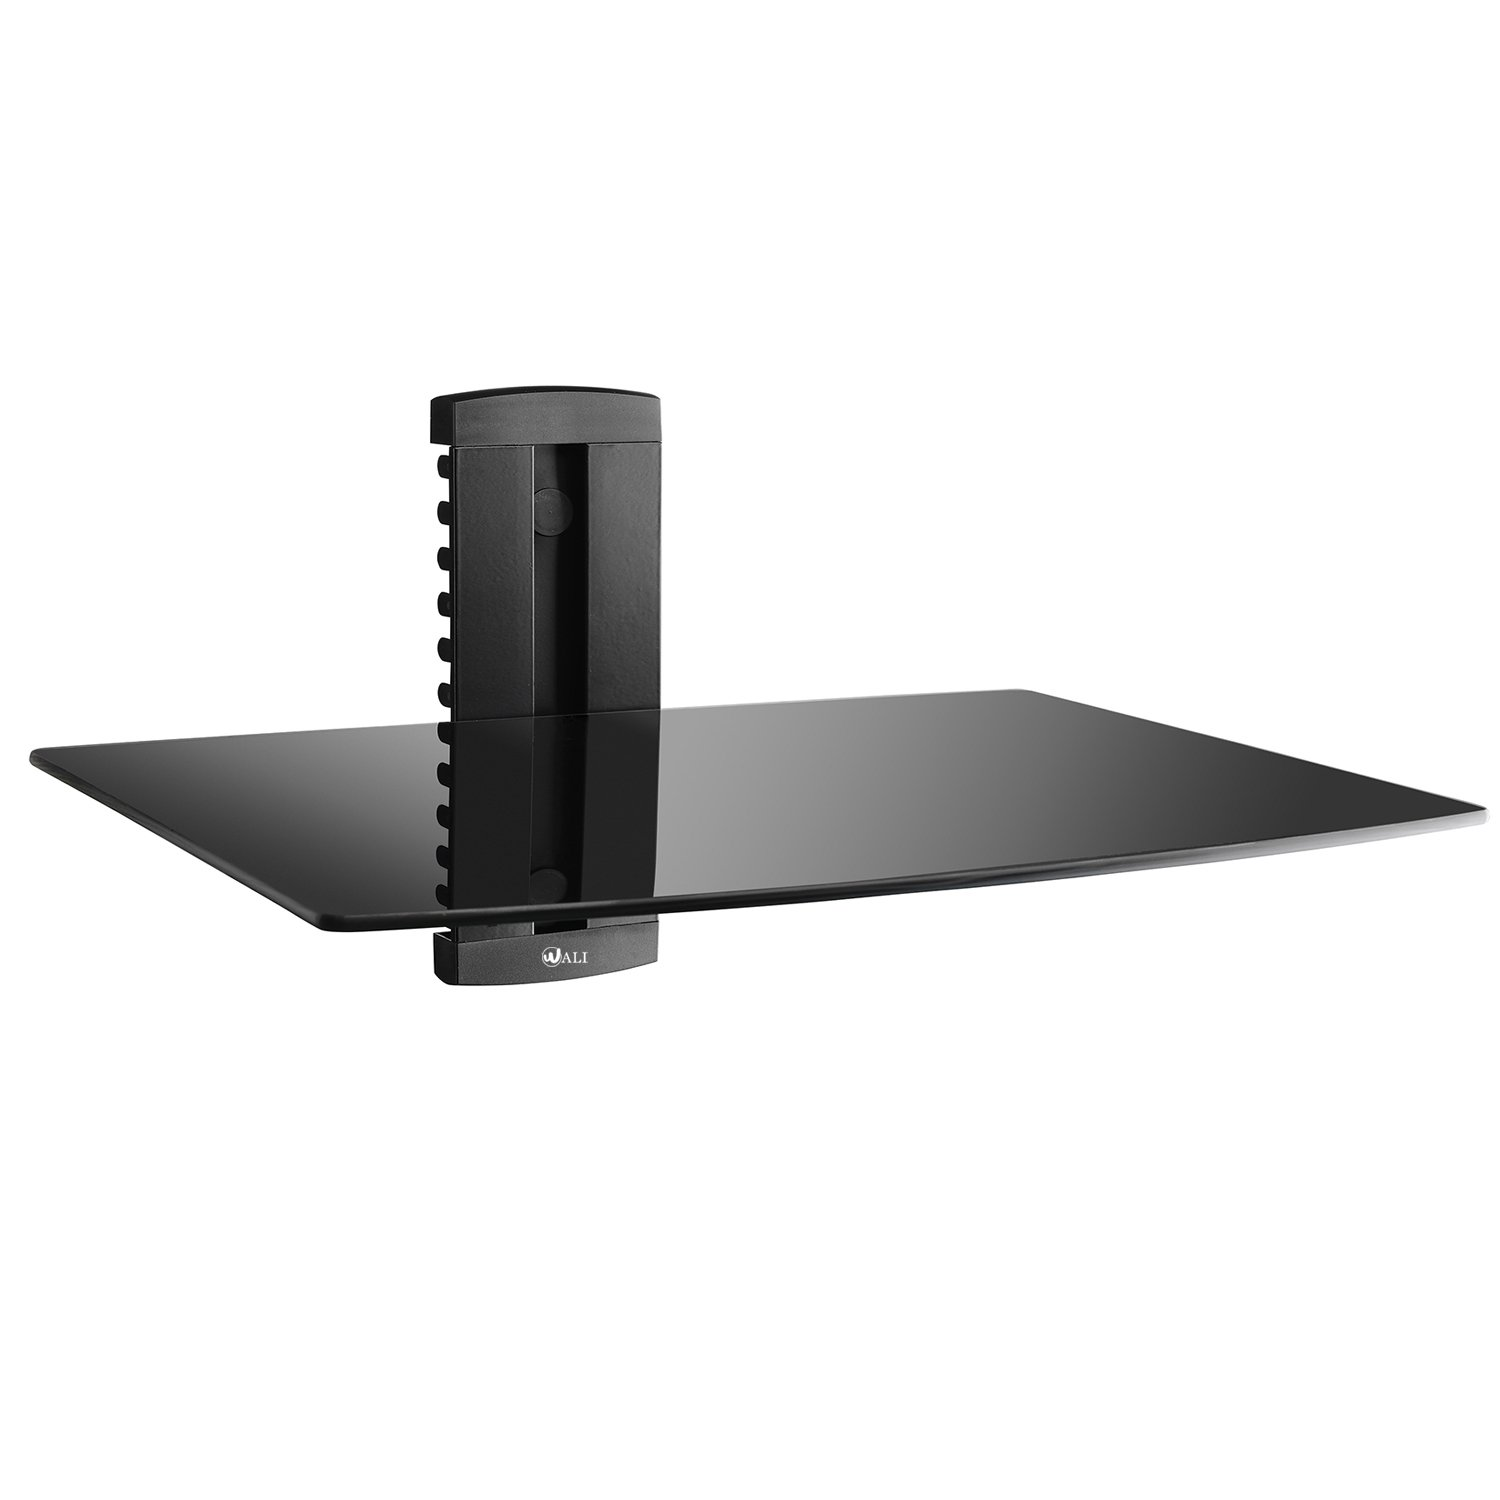 Amazoncom Wali Cs201 1 Floating Wall Mounted Shelf With